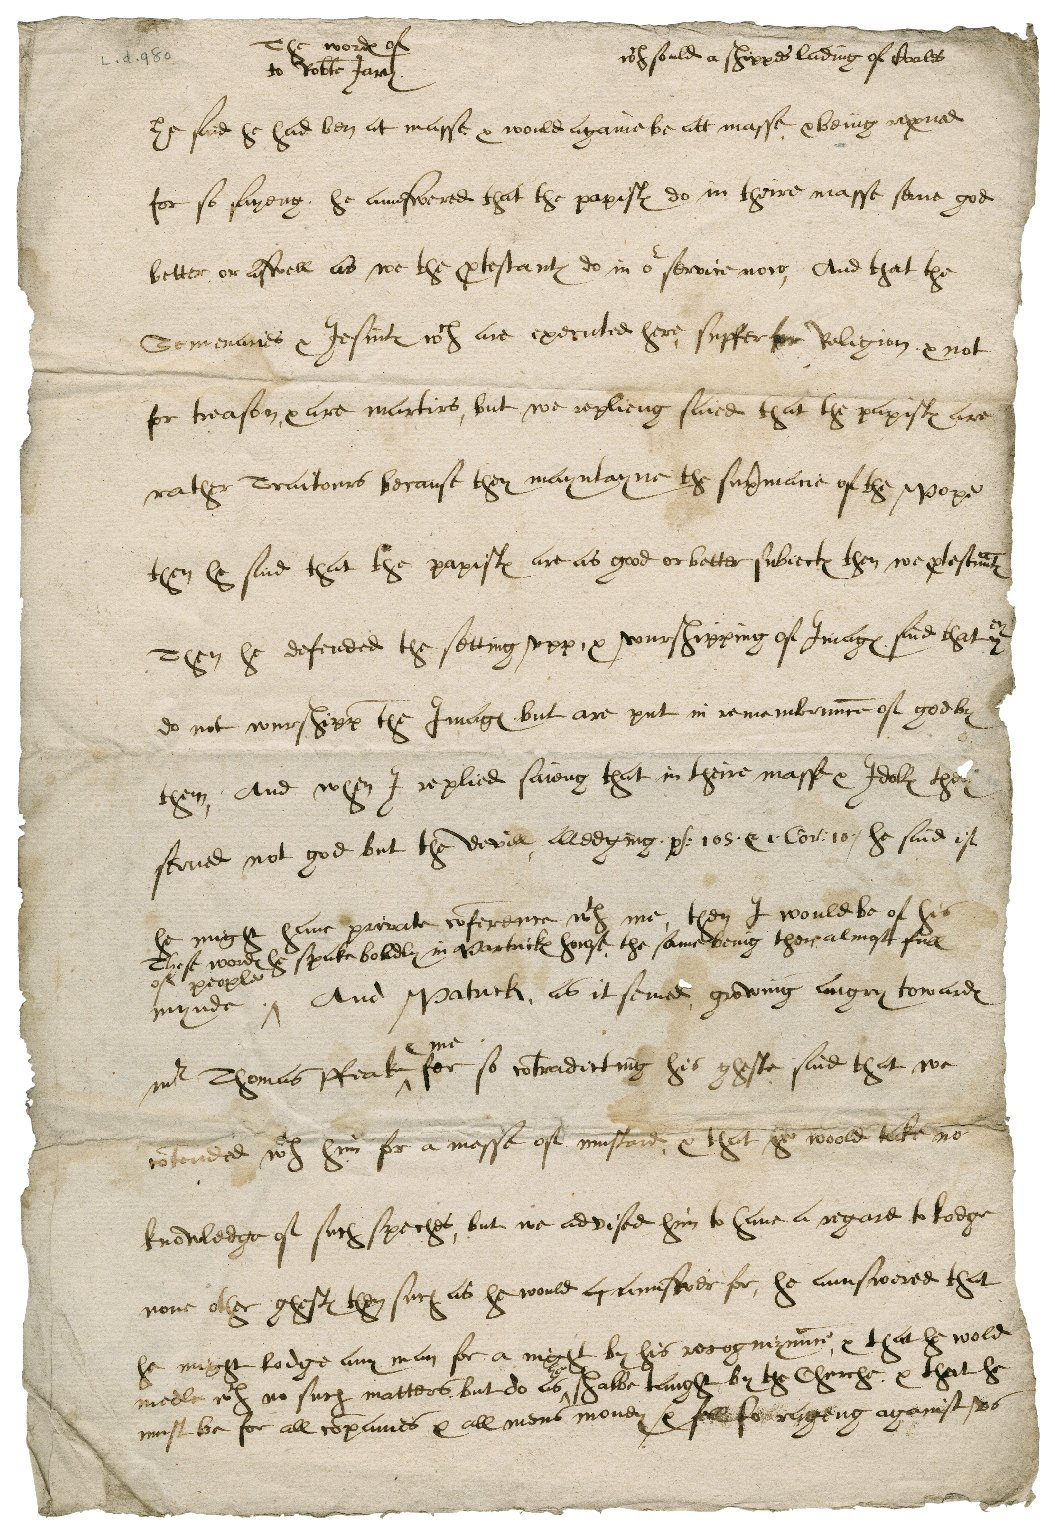 Account of a disputation between a Catholic and a Protestant